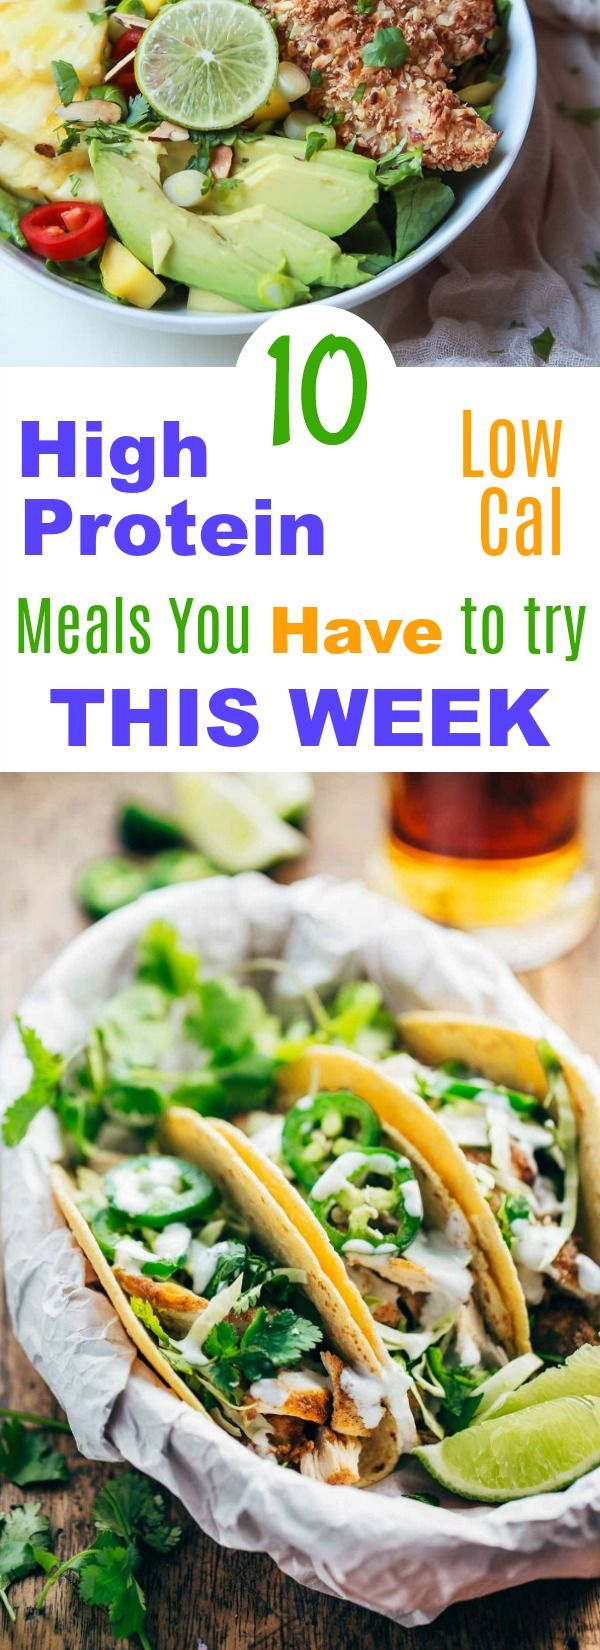 High protein helps us fend off those cravings and these are also low cal dishes you'll want to have over and over. High protein | Low calorie | delicious